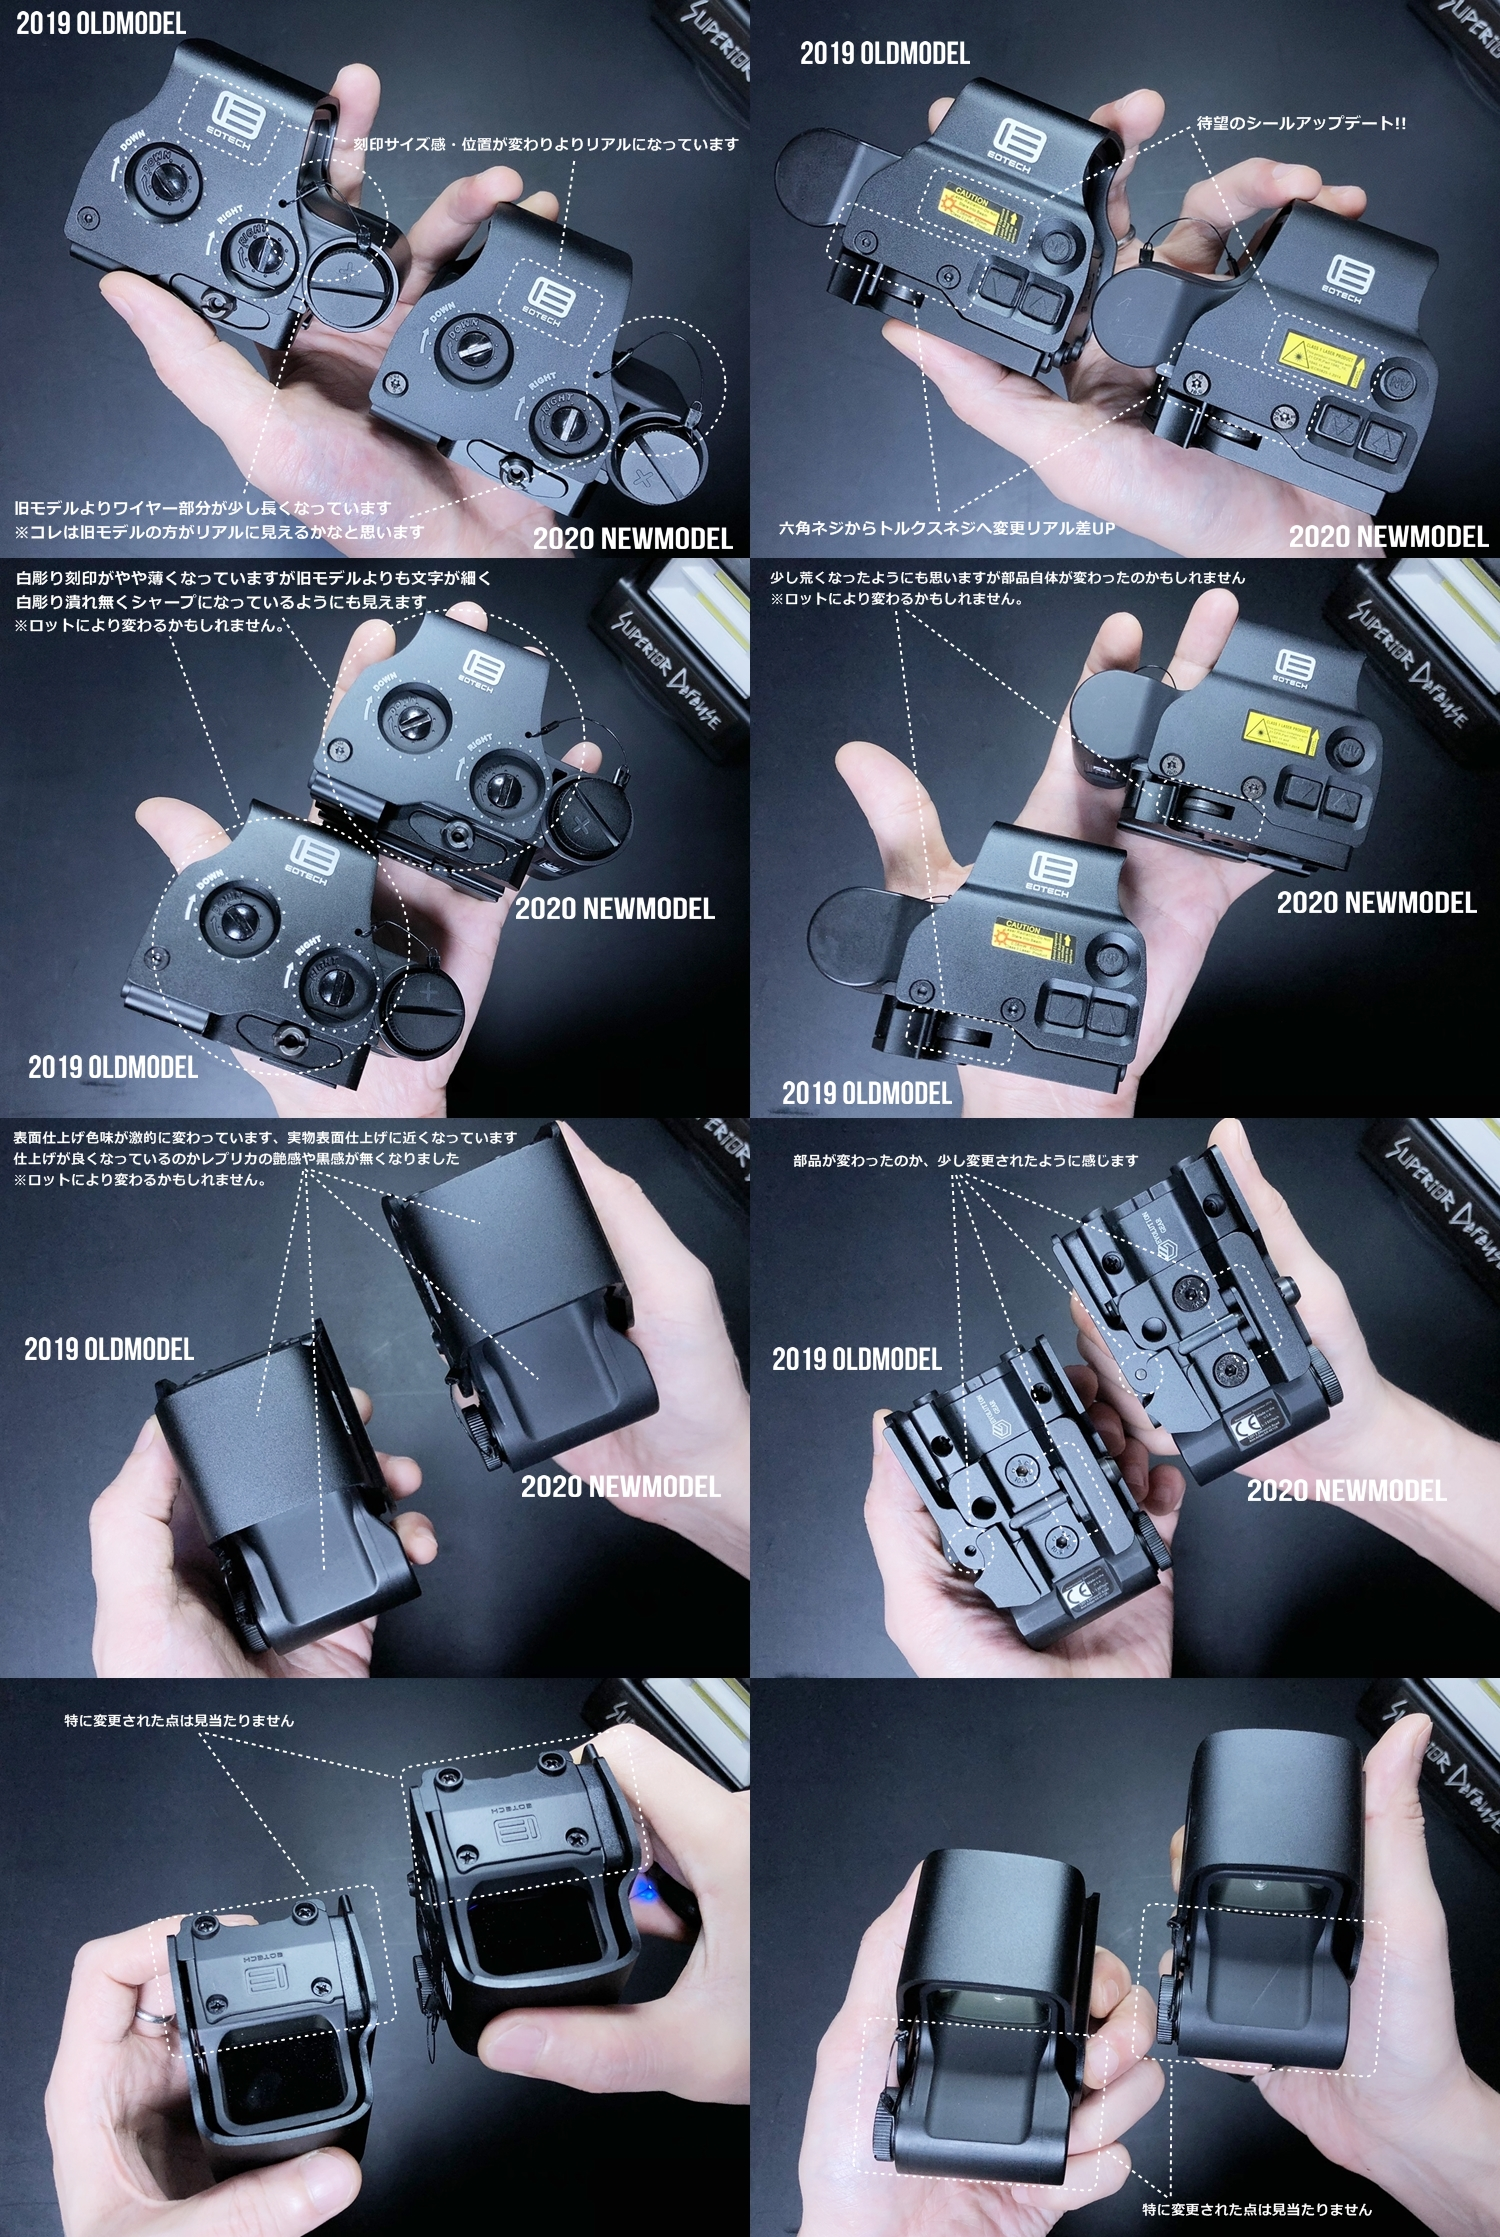 5 EVOLUTION GEAR 2020 改良版 EOTech EXPS3-0 NEW!! 最新リアルバージョンの改良点を徹底検証だ!! 新エボギア & 旧エボギア & 実物 イオテック ホロサイト!! 開封 比較 検証 取付 レビュー!!